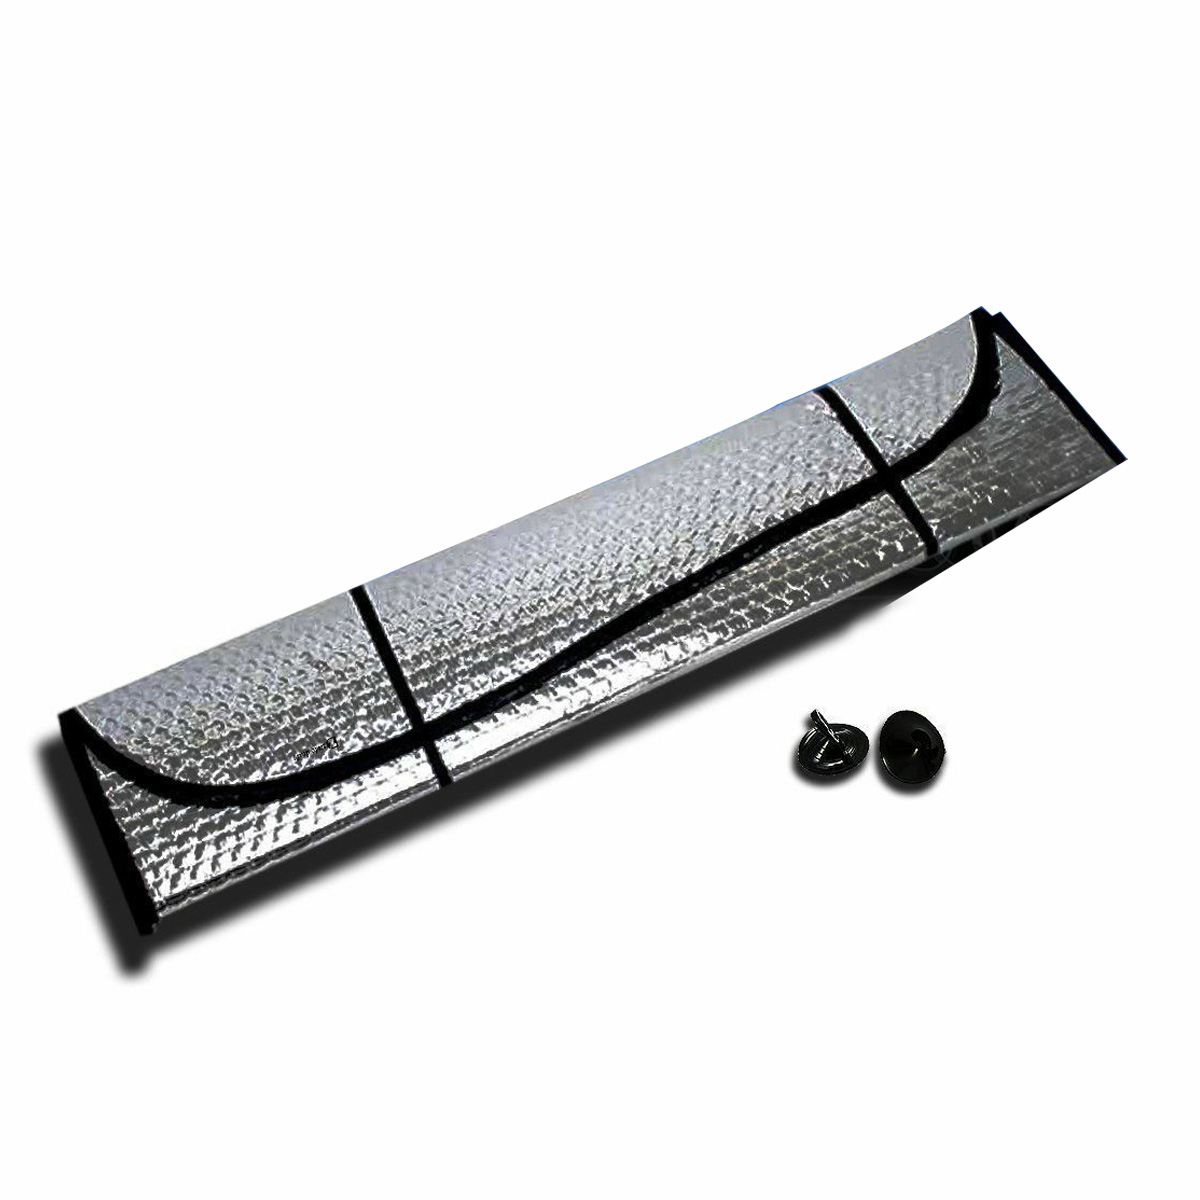 Foldable For Car Windshield Sunshade Reflective Sun Shade Visor Cover 160*60CM-in Windshield Sunshades from Automobiles & Motorcycles